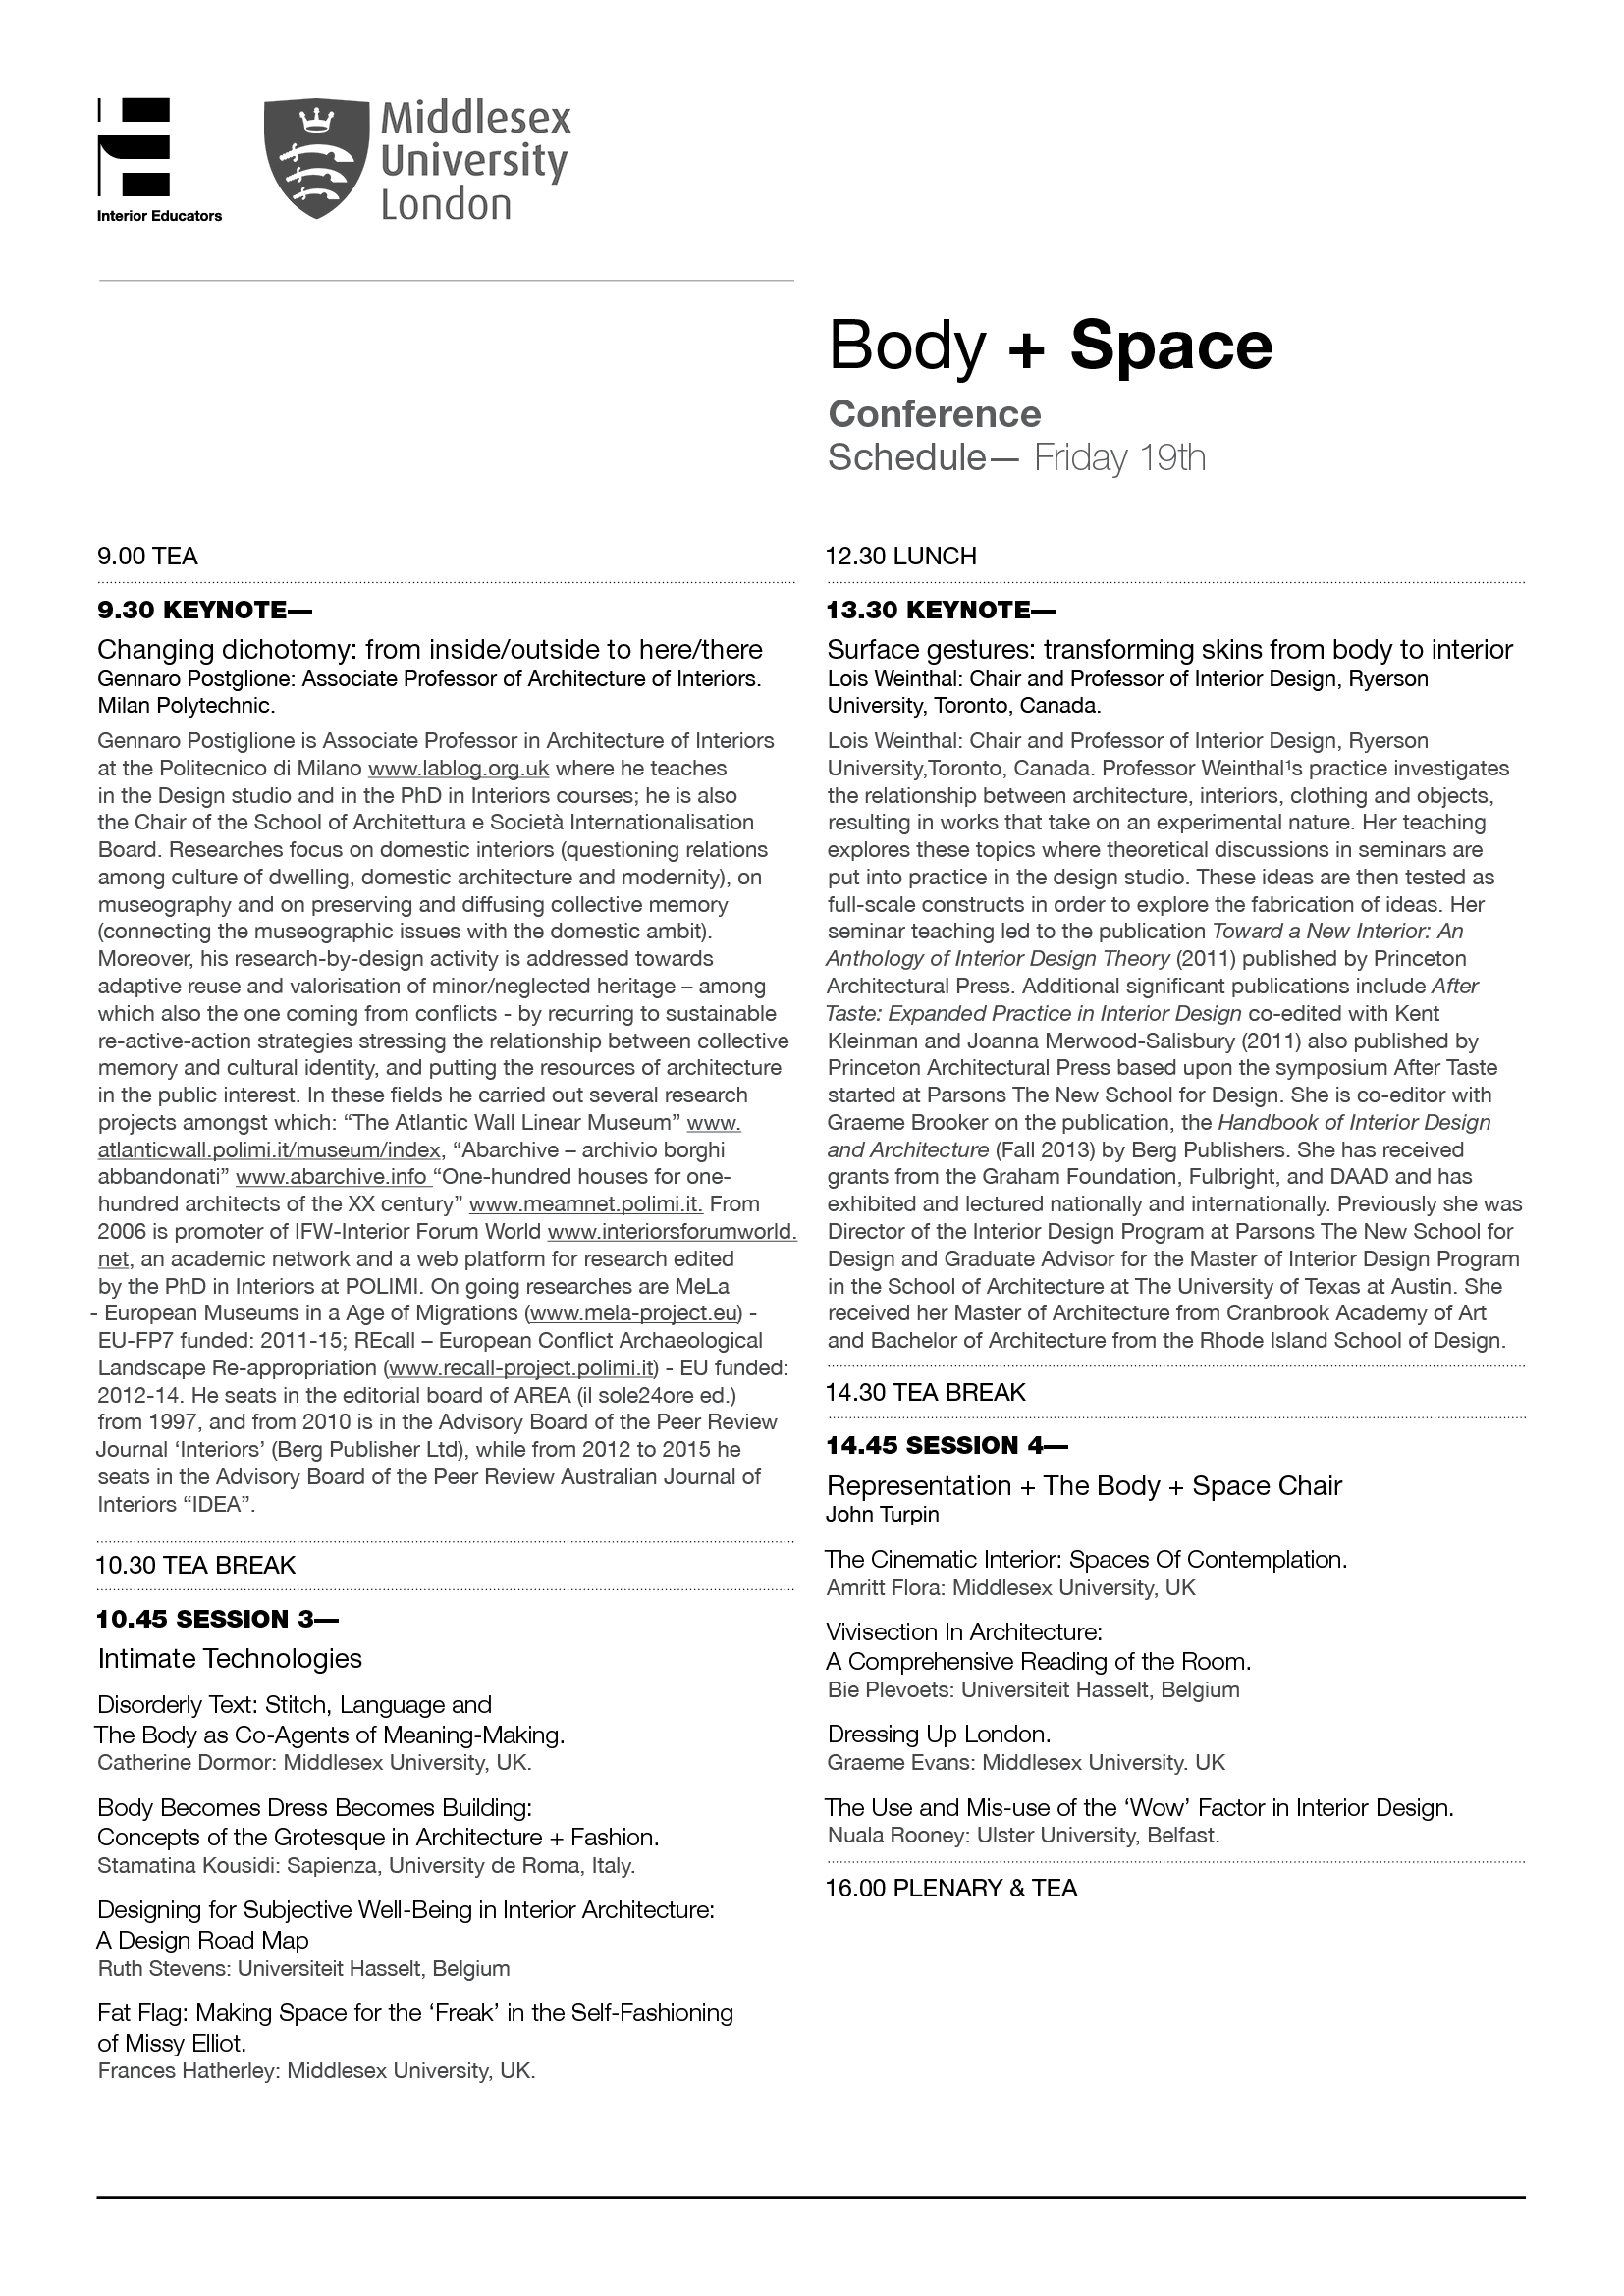 Body + Space Event - Friday Schedule